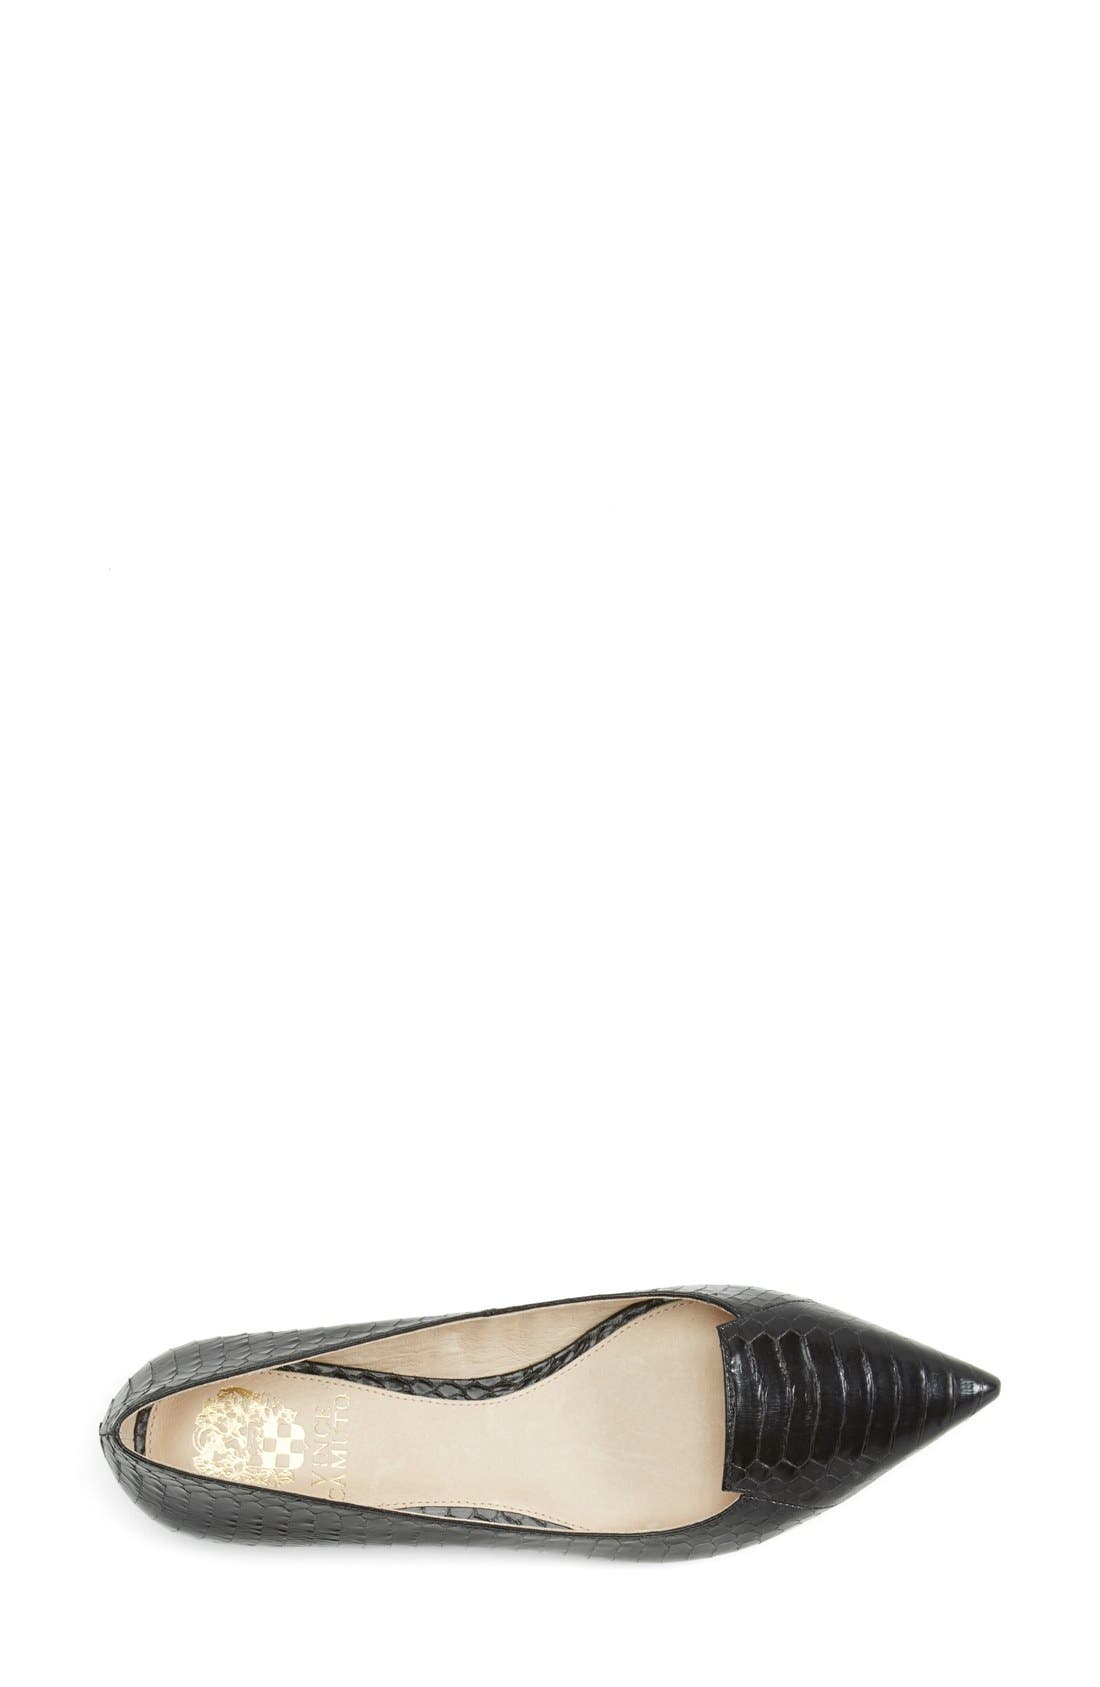 'Empa' Pointy Toe Loafer Flat,                             Alternate thumbnail 4, color,                             001